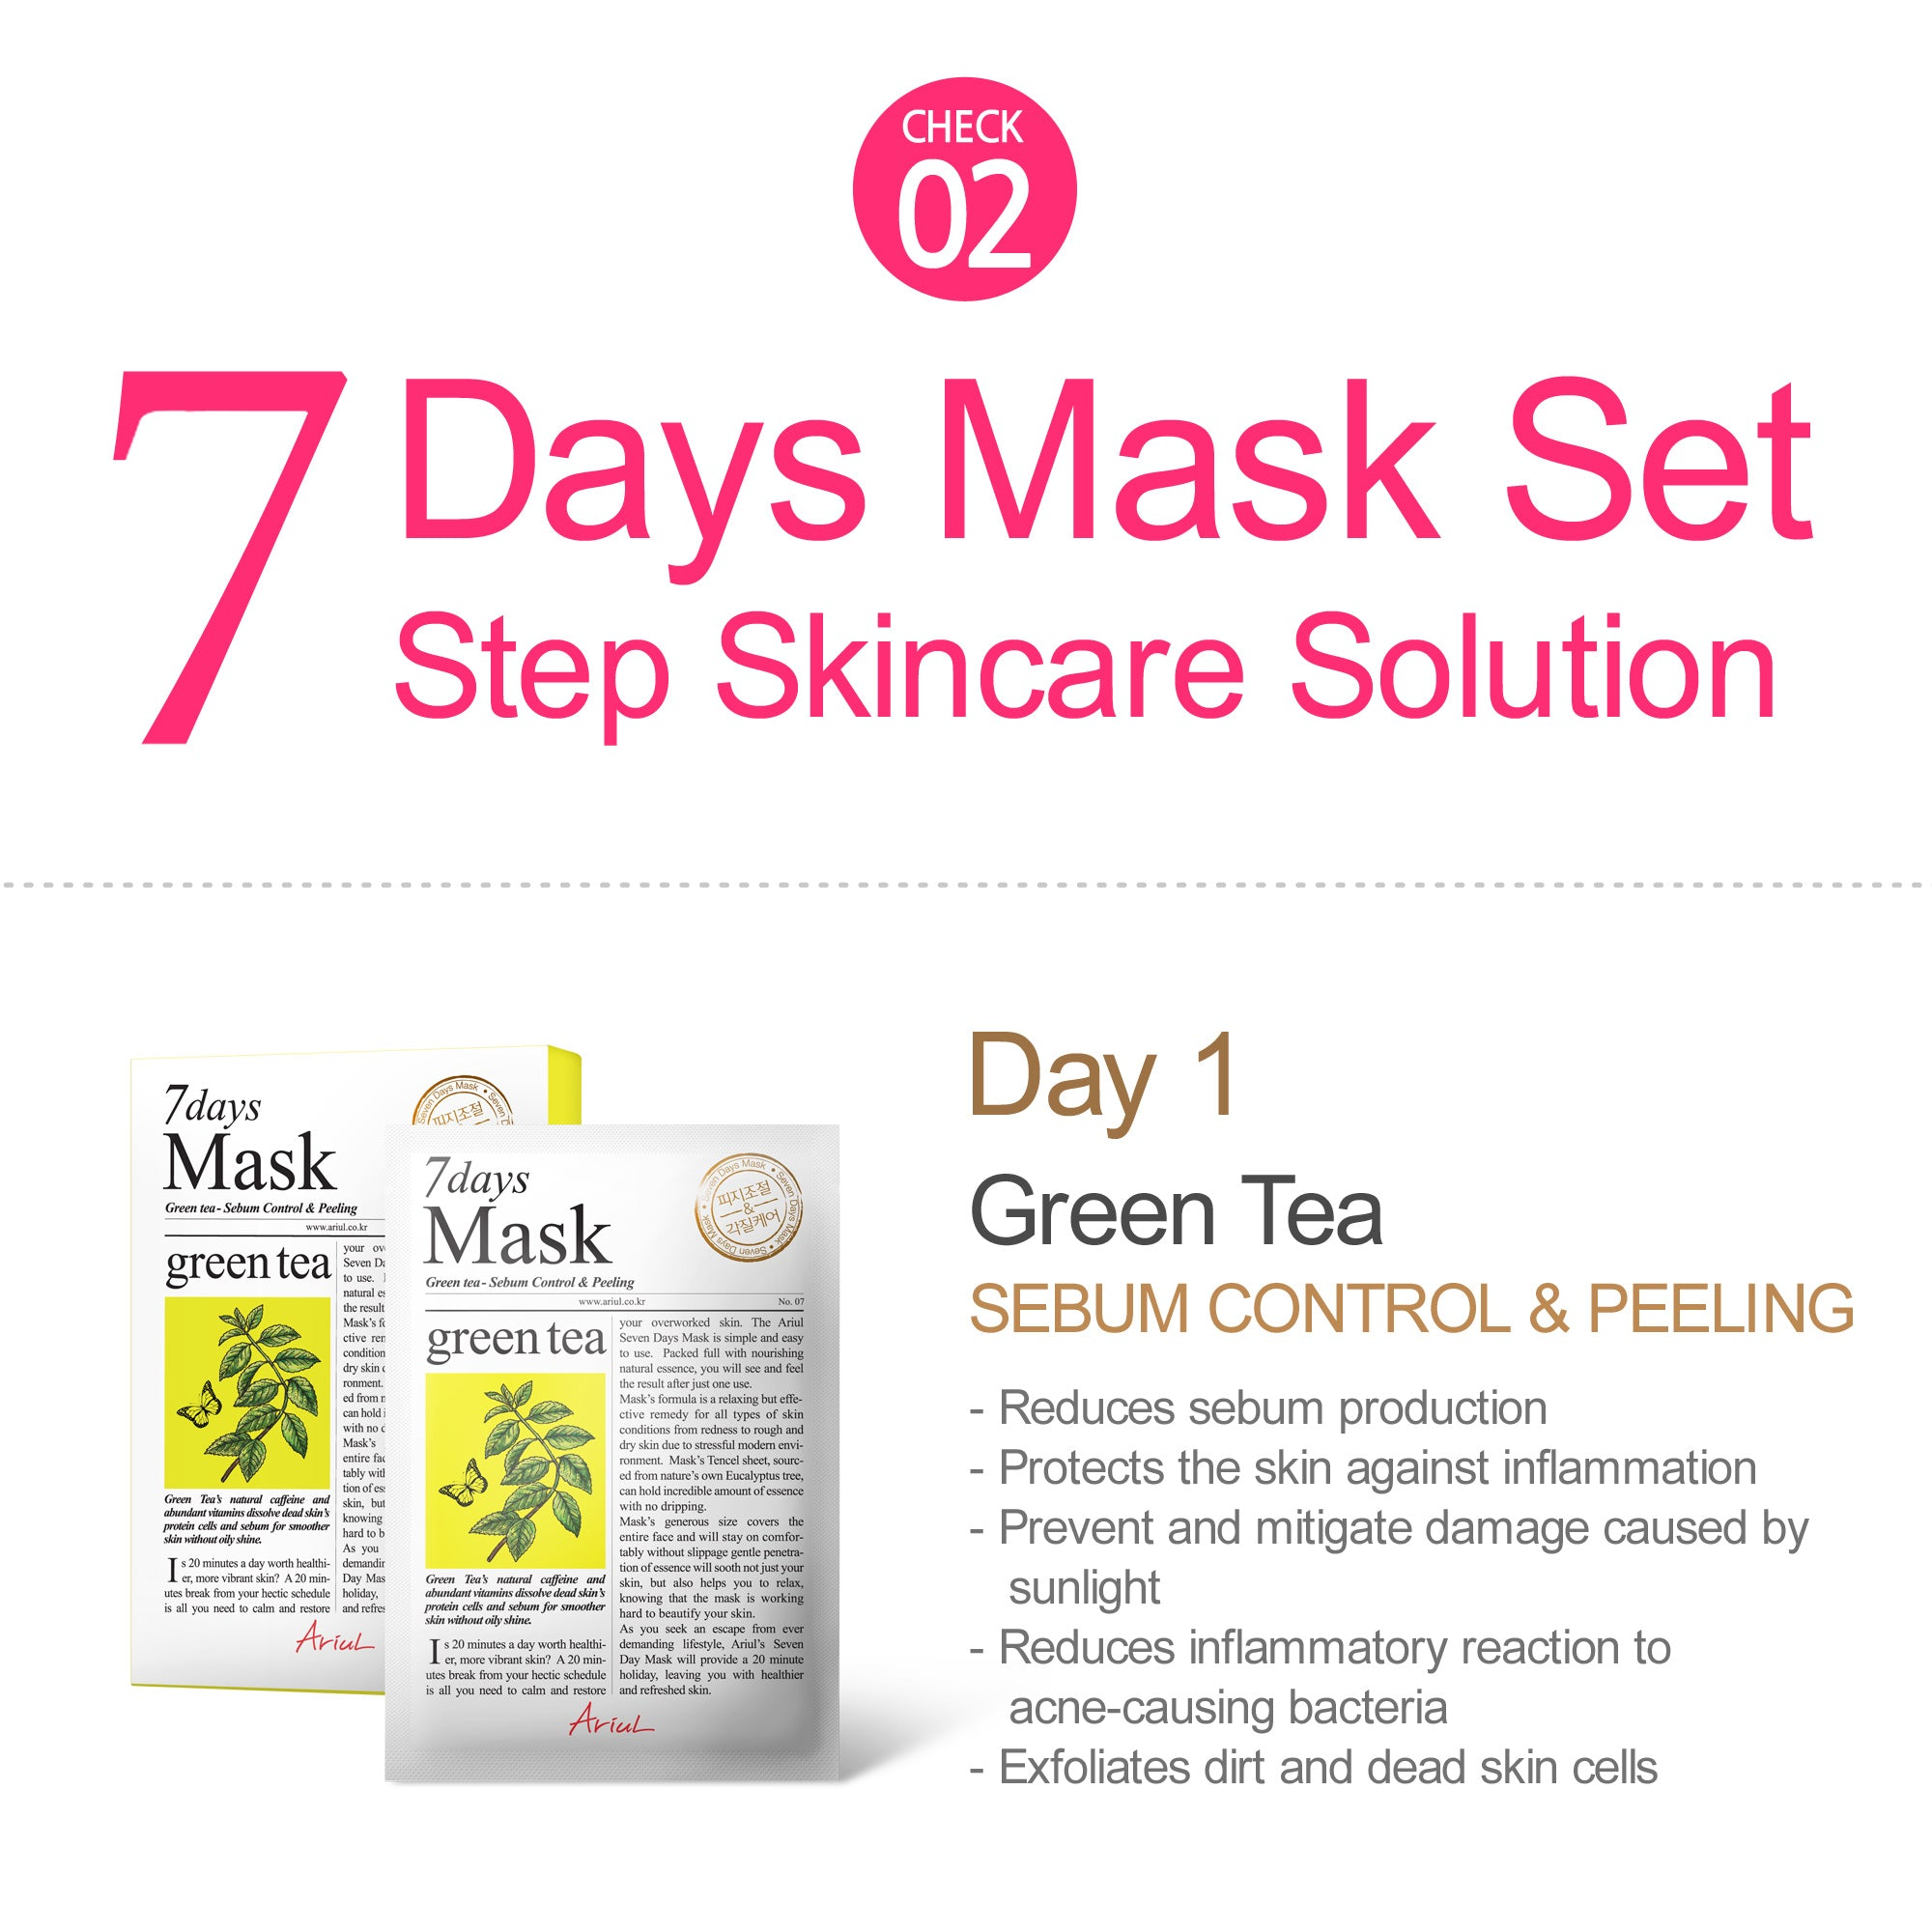 Ariul 7Days Mask Bundle